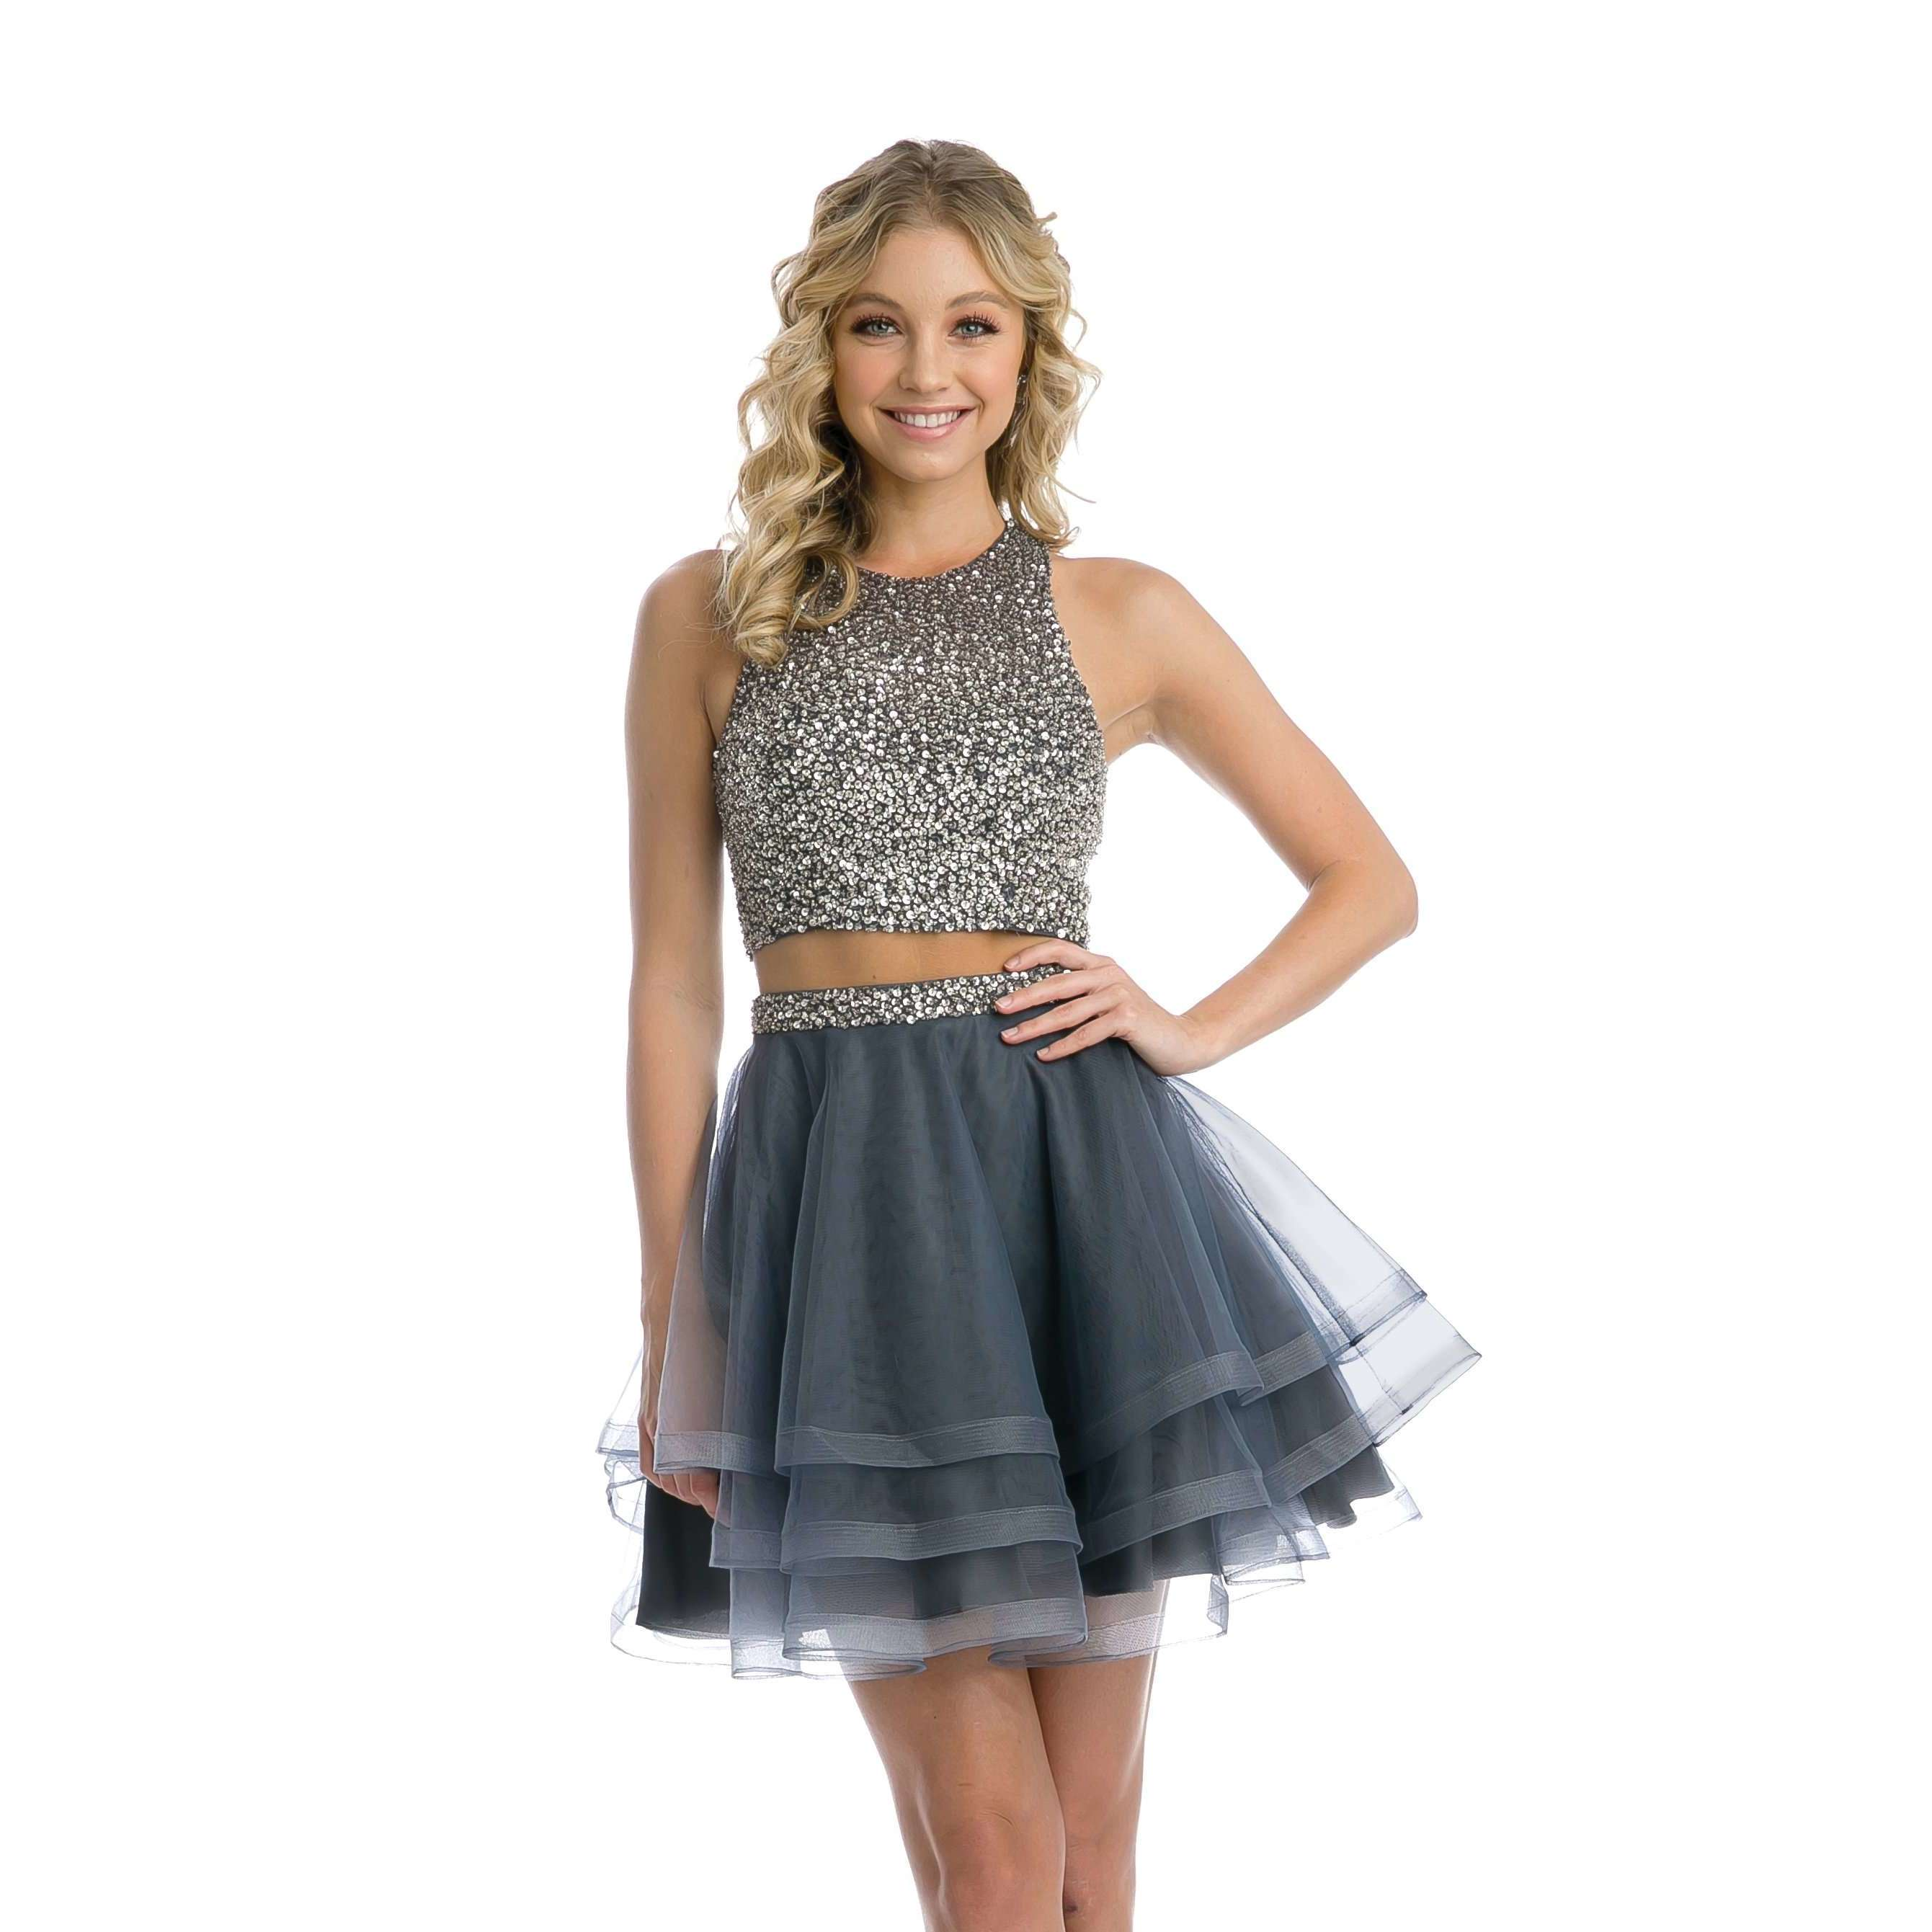 Sequins High Neck Two Piece Short Dress 810 - Julietdresses